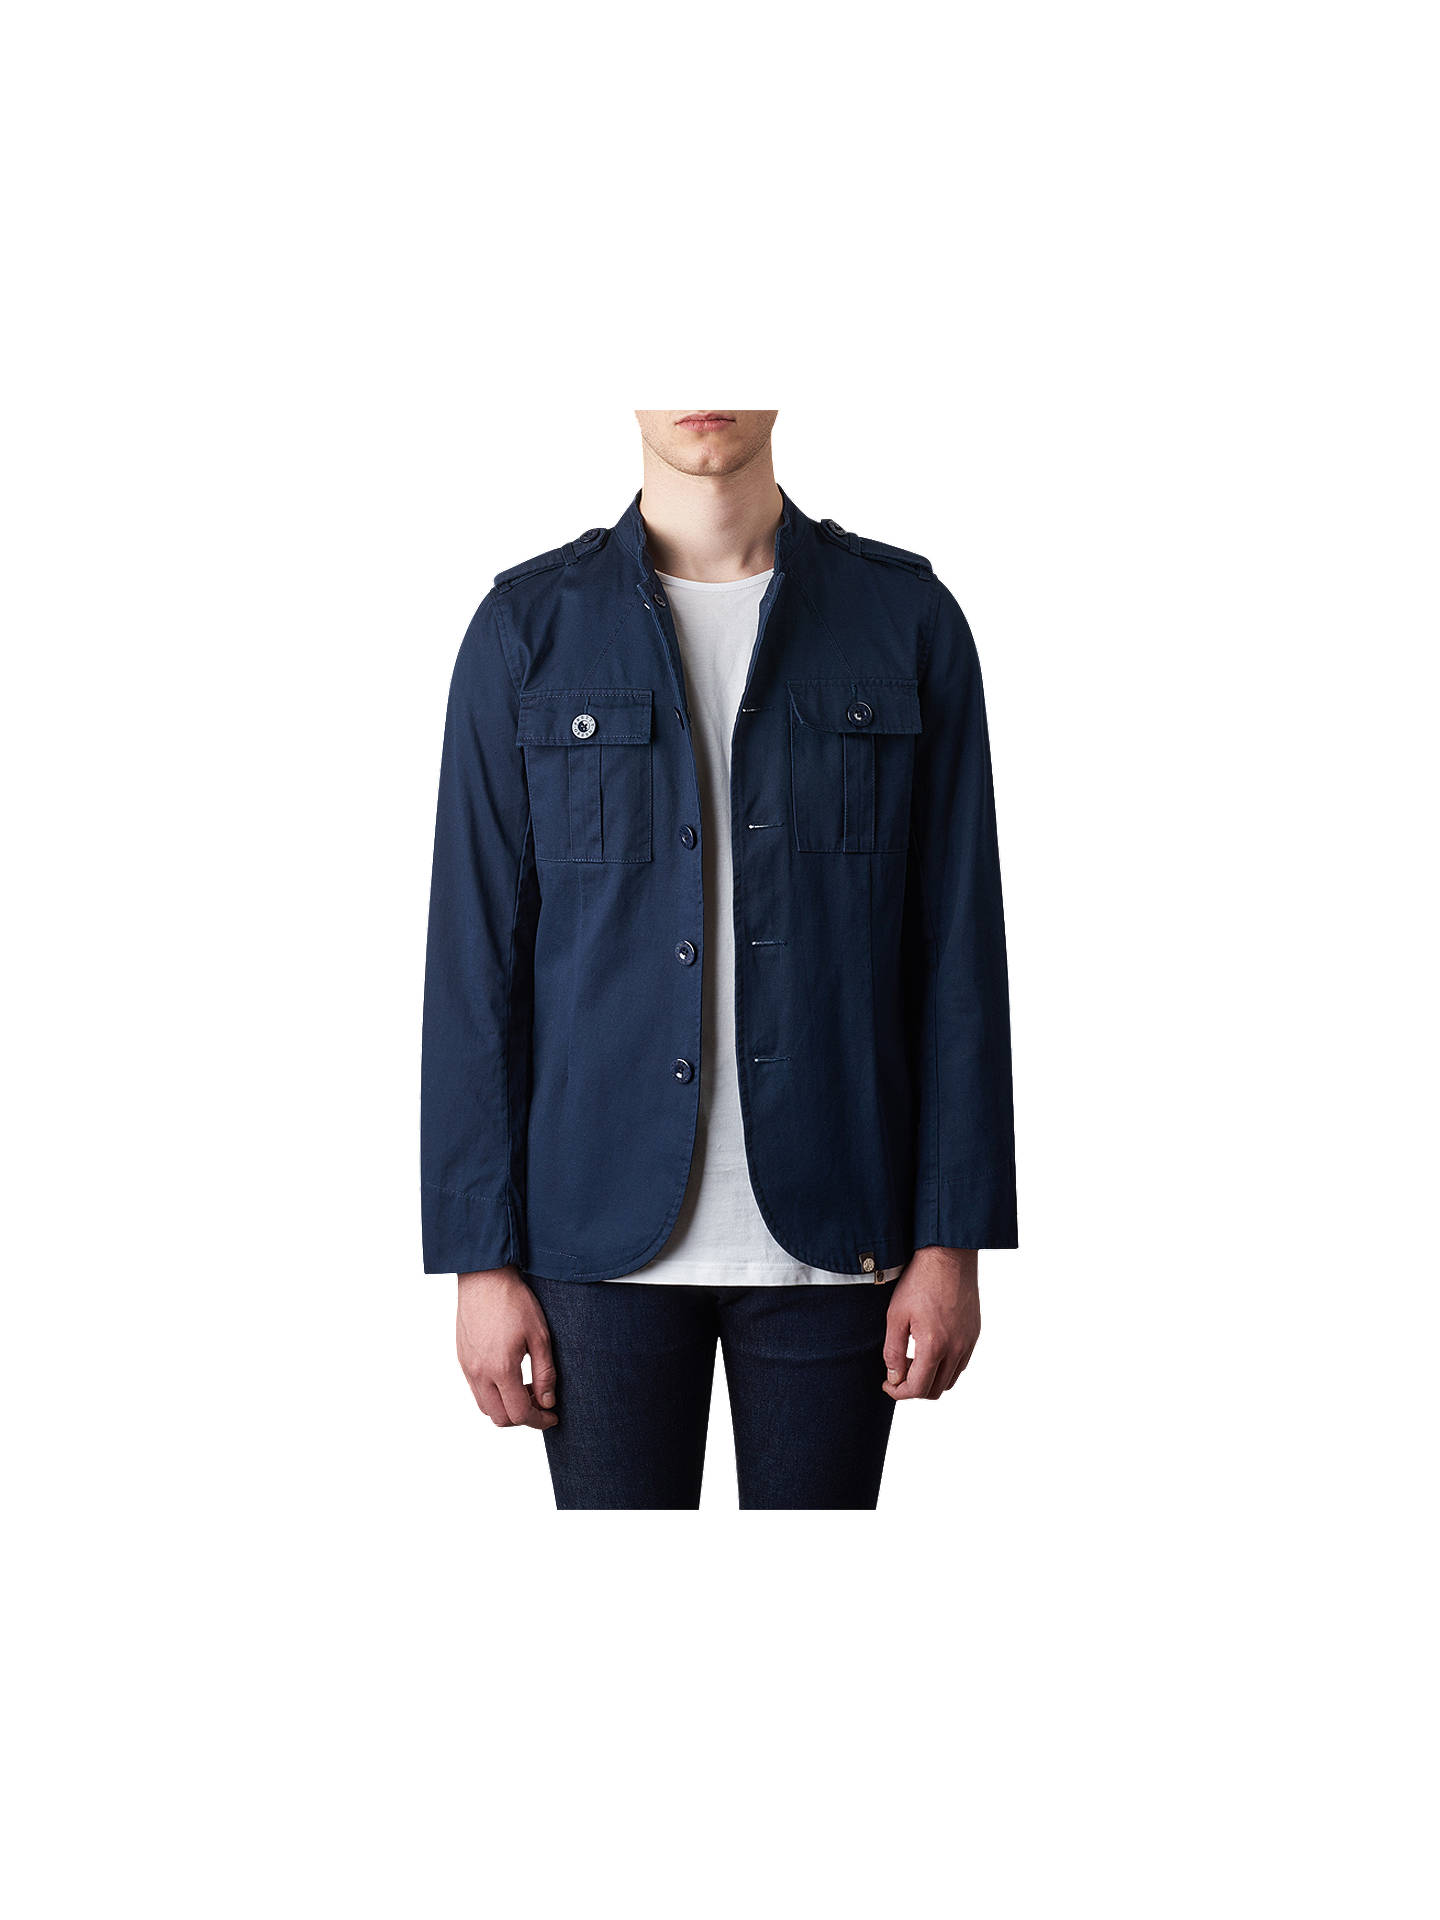 64627593a81f Buy Pretty Green Langford Military Jacket, Navy, S Online at johnlewis.com  ...